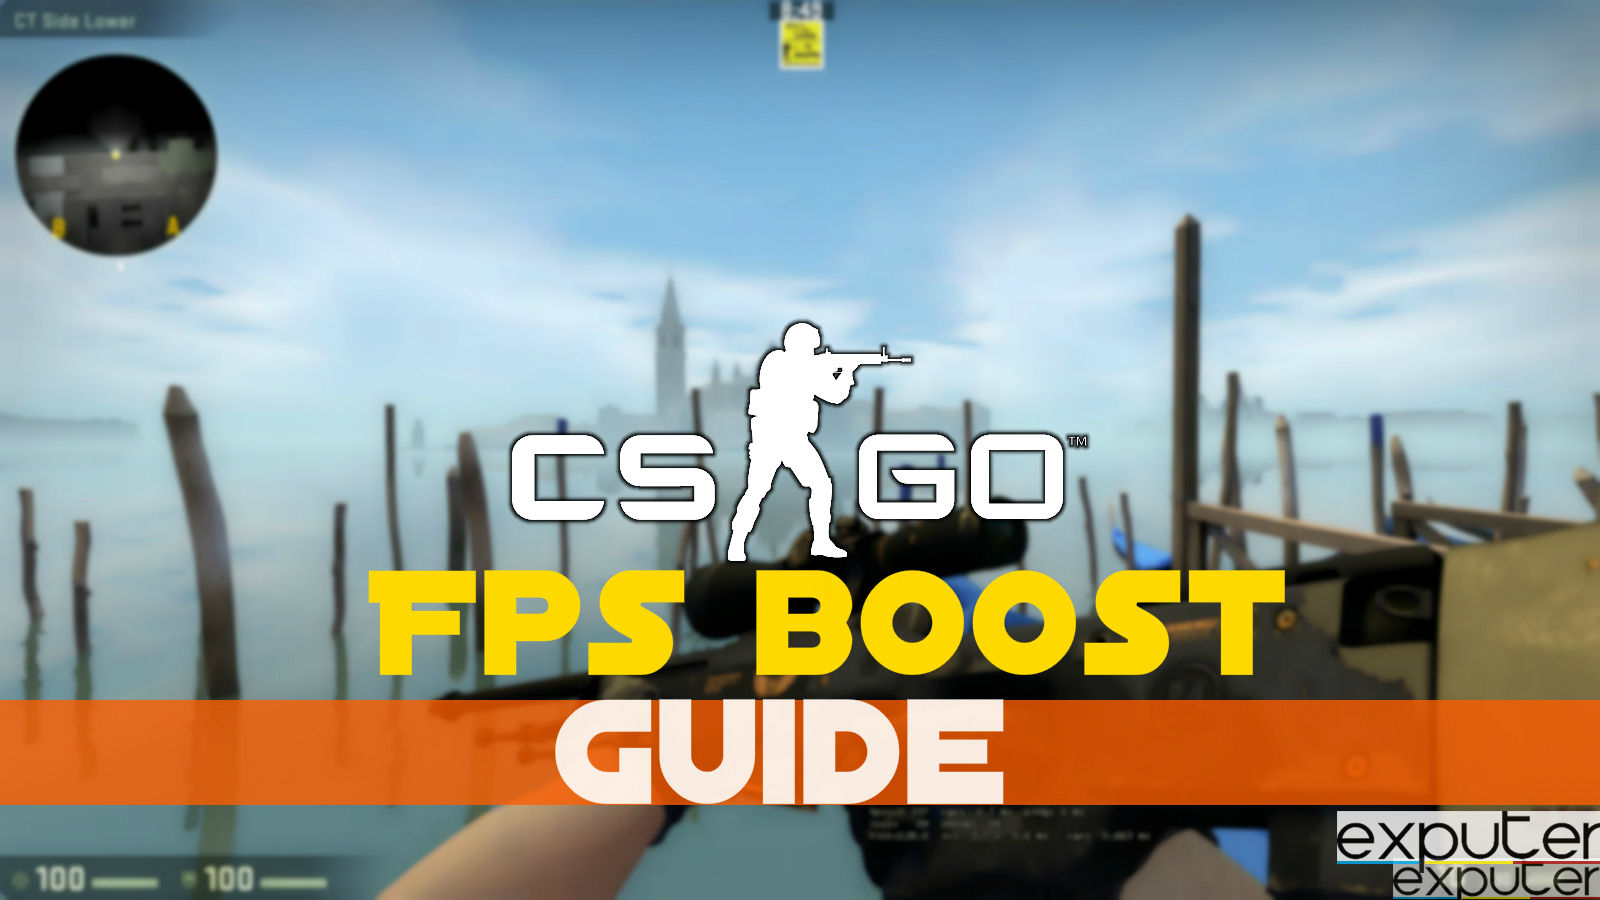 CSGO (Counter Strike Global Offensive) Guide: How to